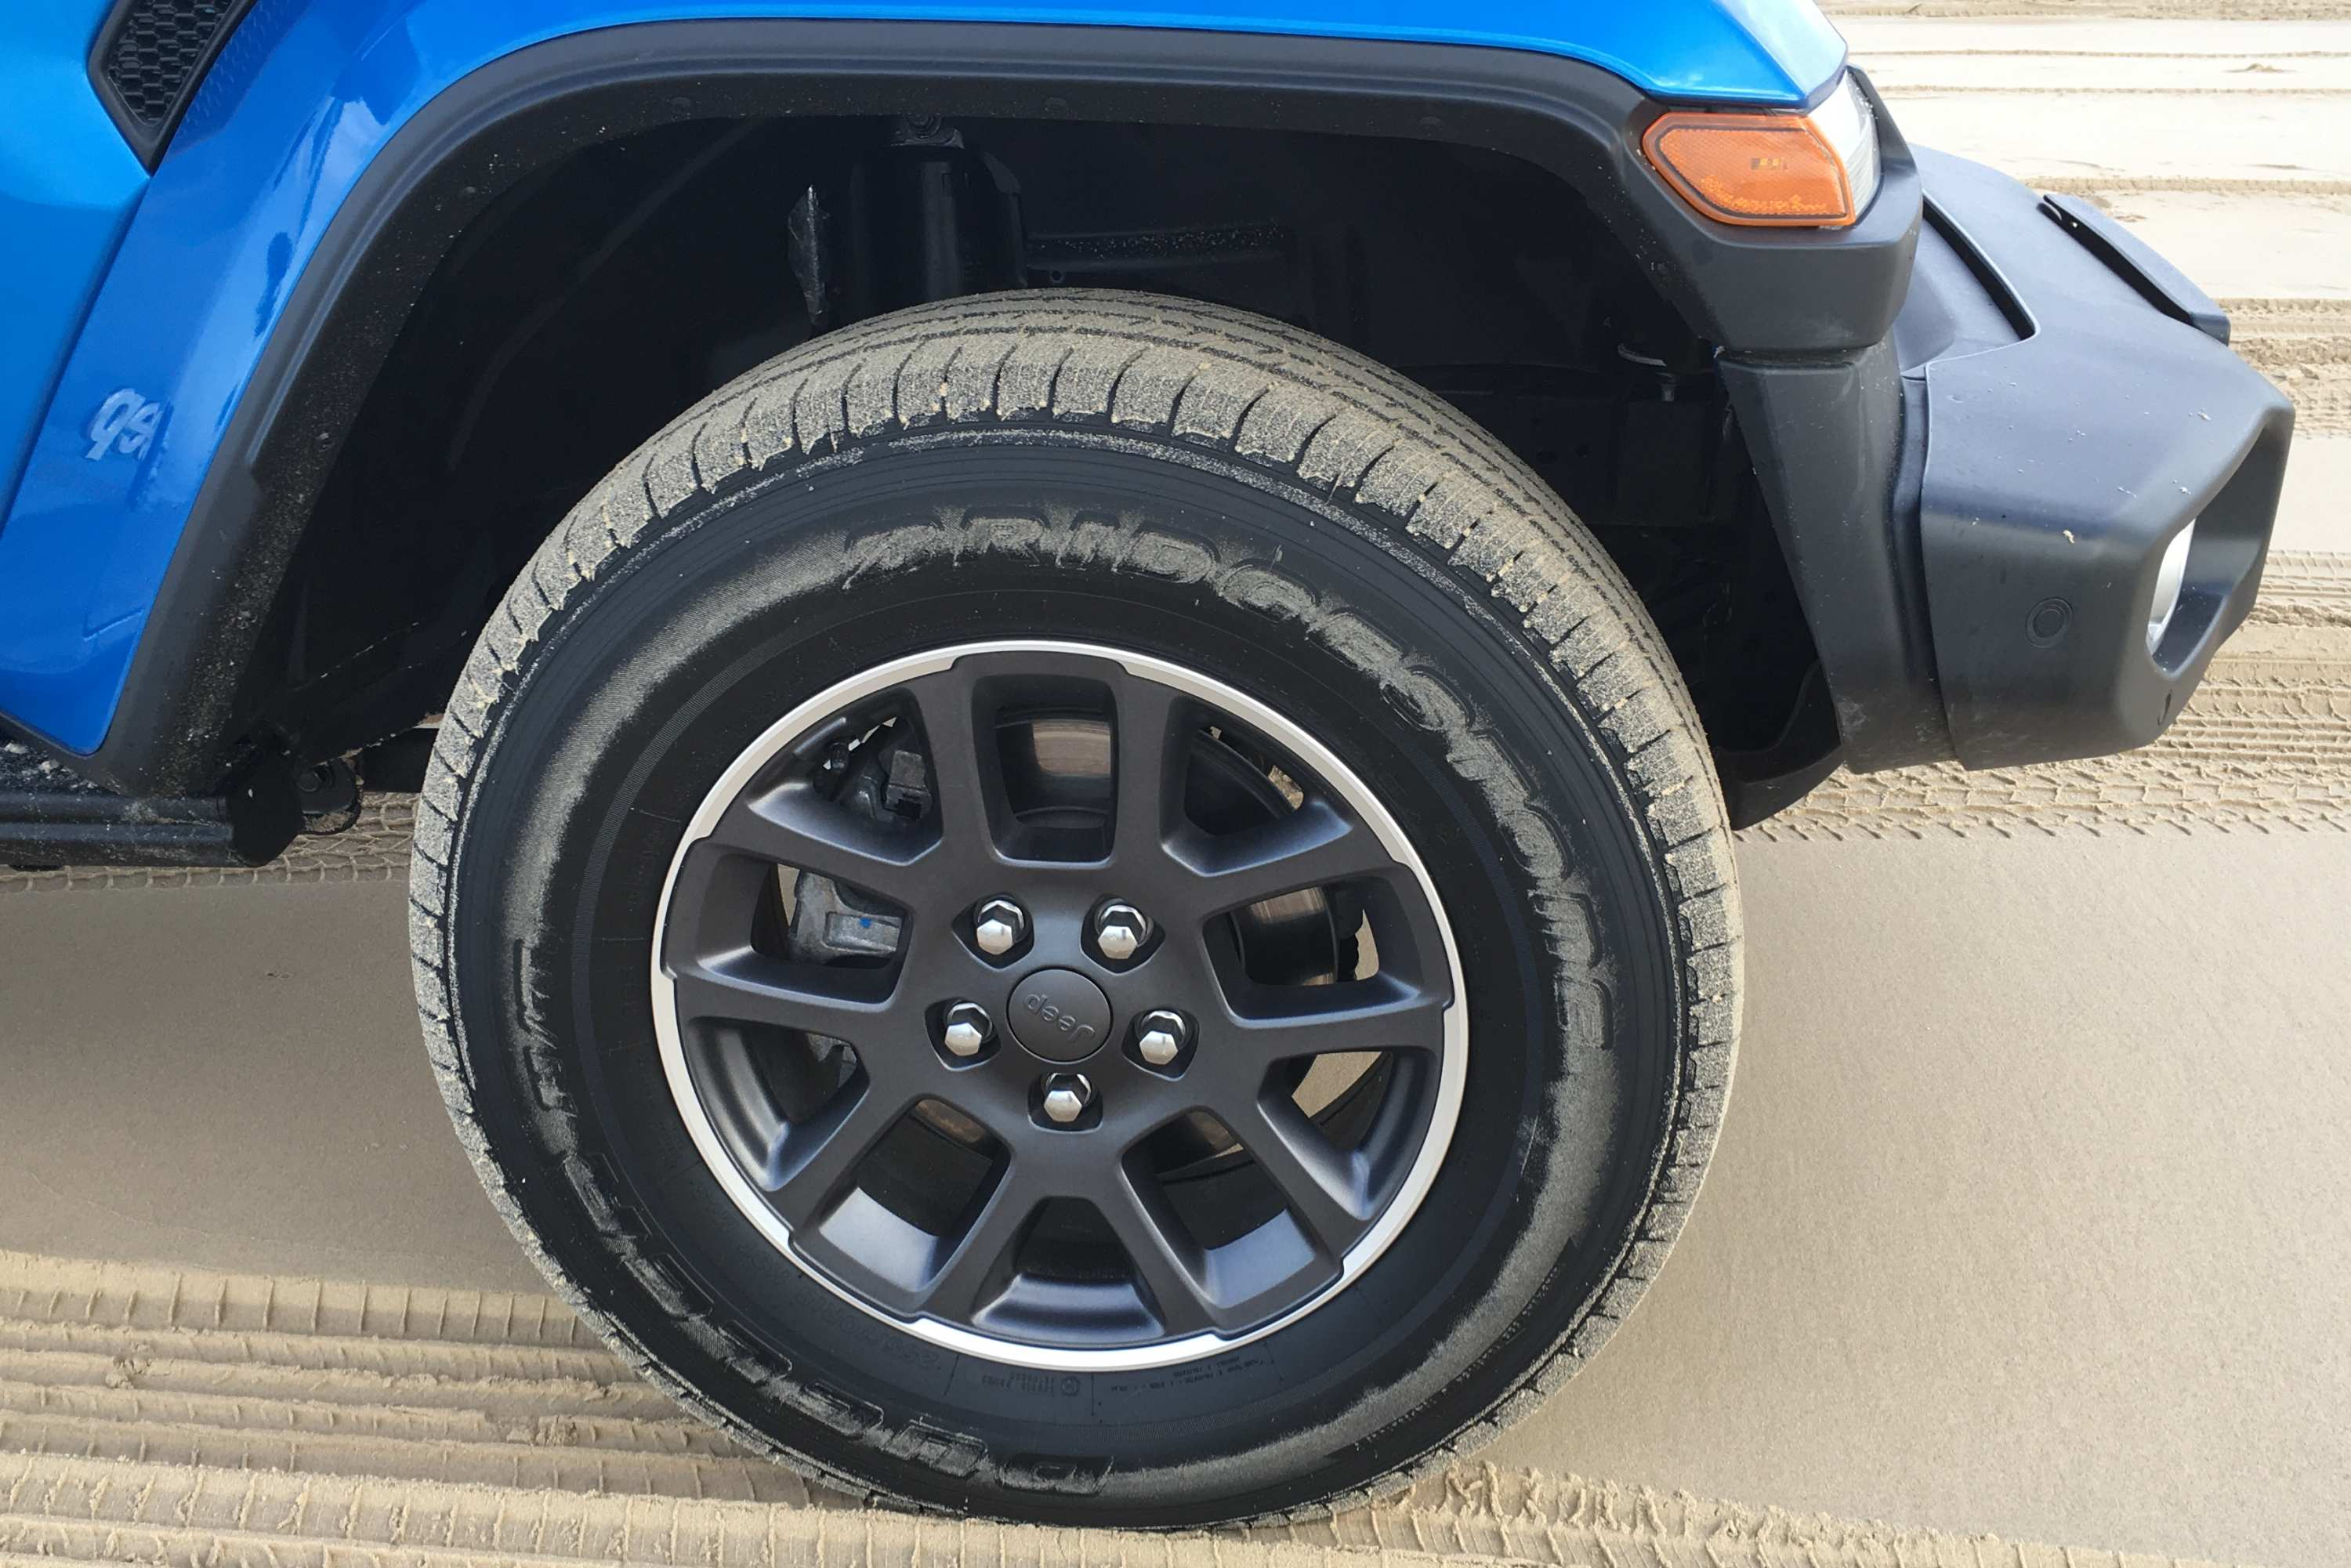 Jeep Gladiator Overland 4WD Ute tyres